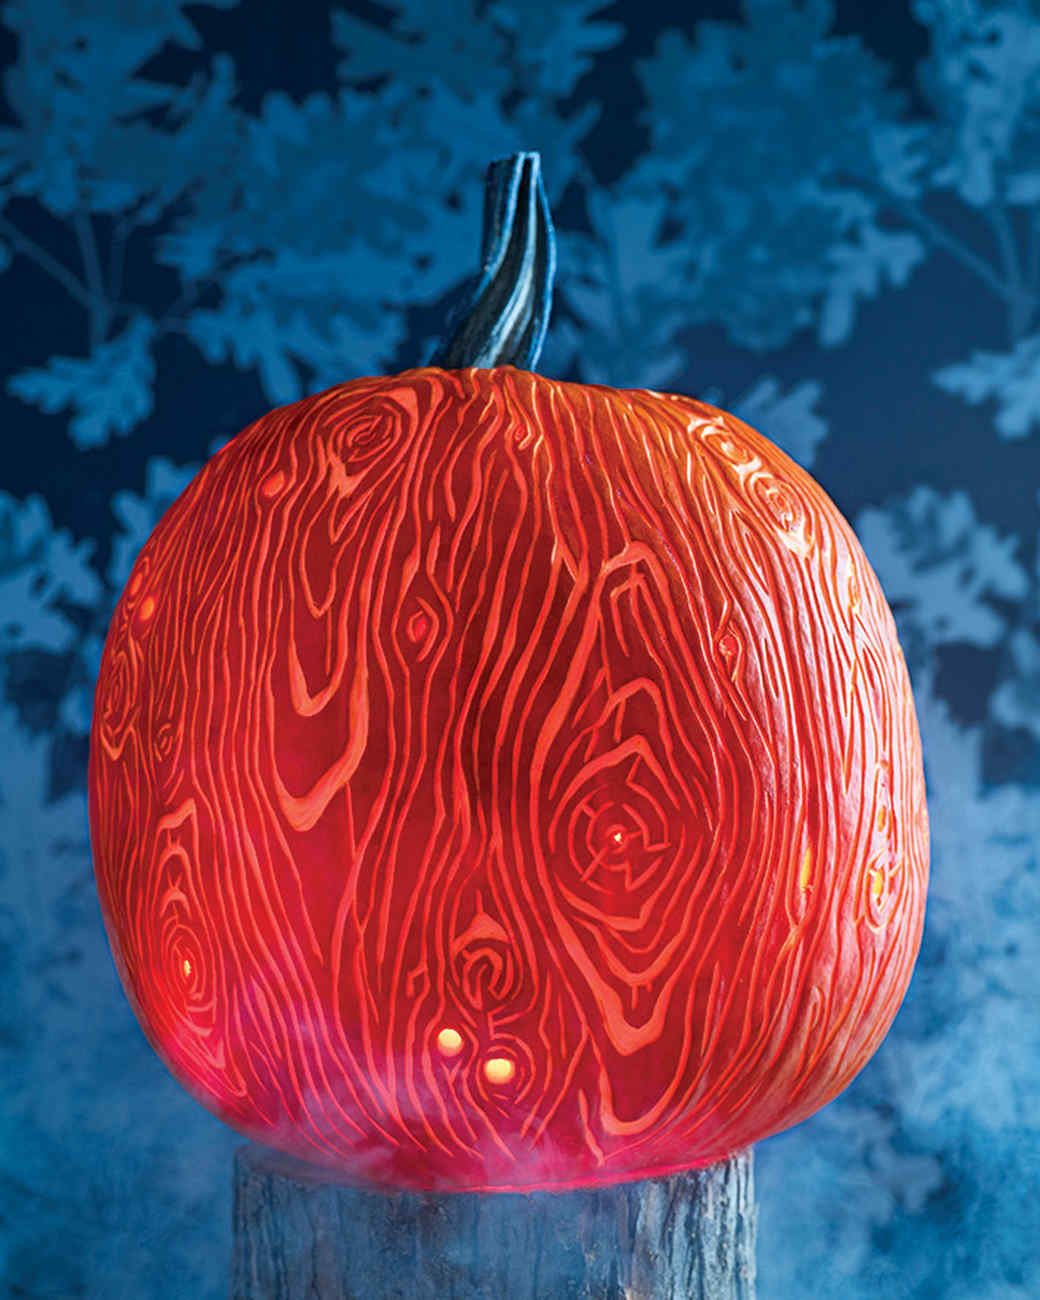 Amazing and inspiring pumpkin carving designs